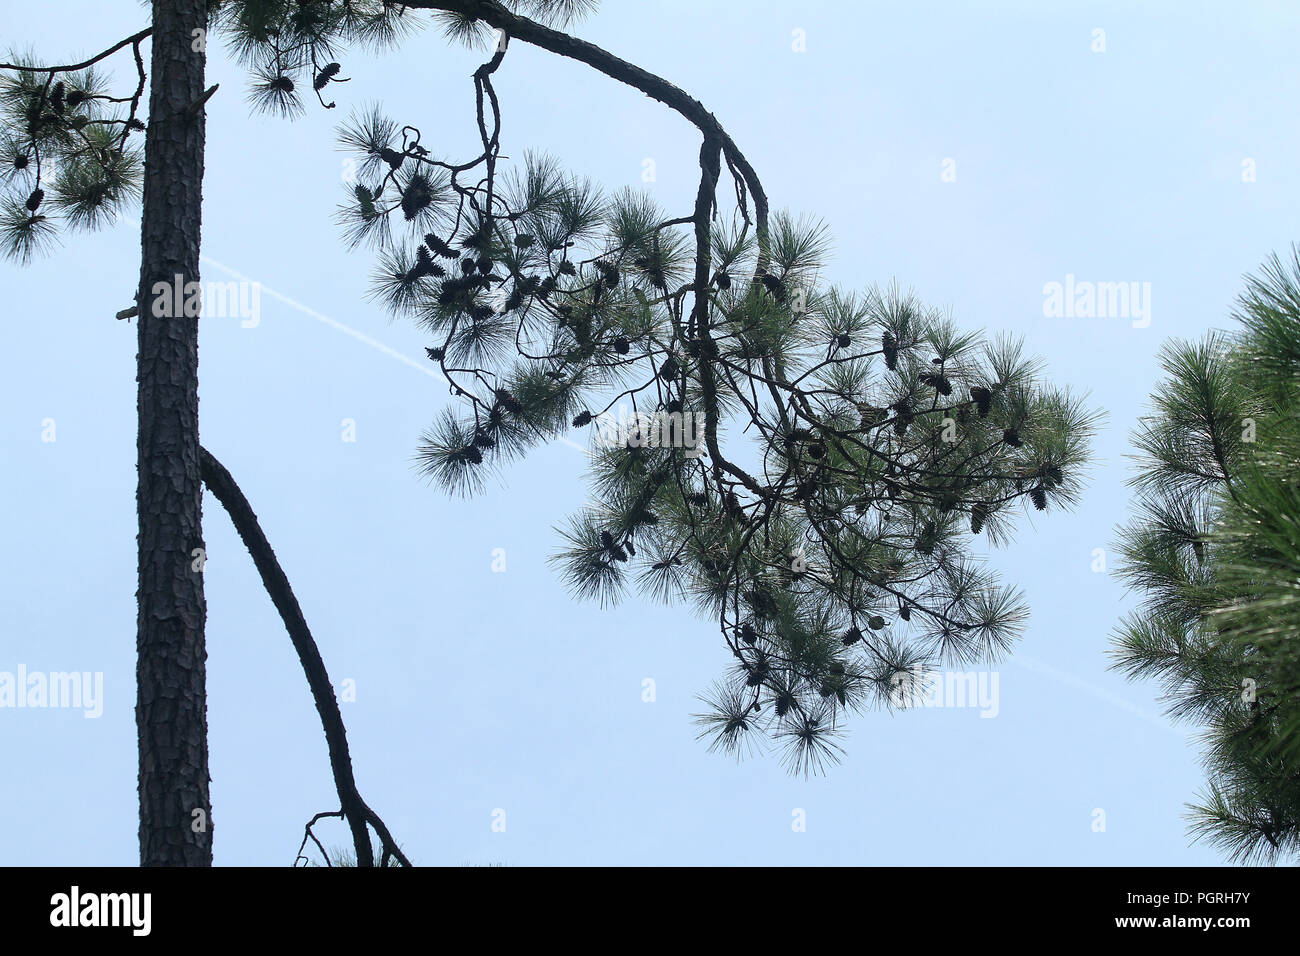 Pine tree branch with cones seen against clear sky - Stock Image